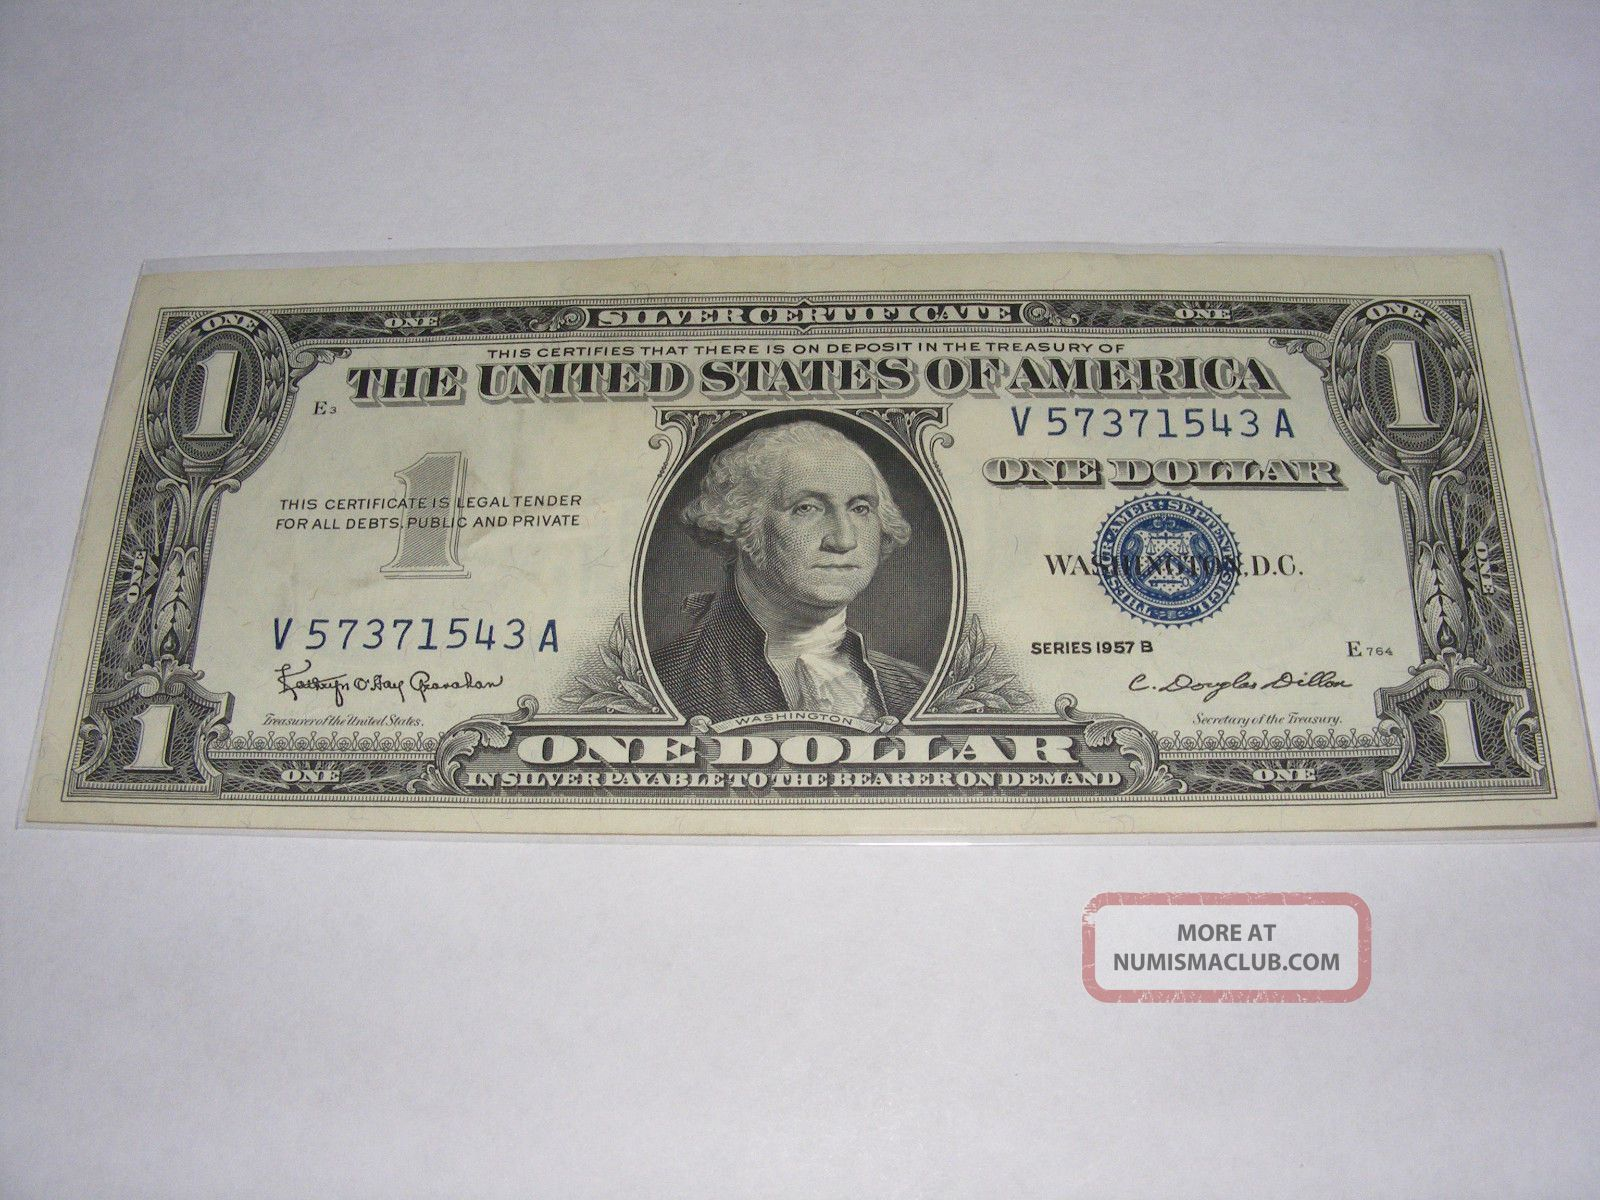 1957 B $1 Silver Certificate Uncirculated (- Crisp) V 57371543 A Small Size Notes photo